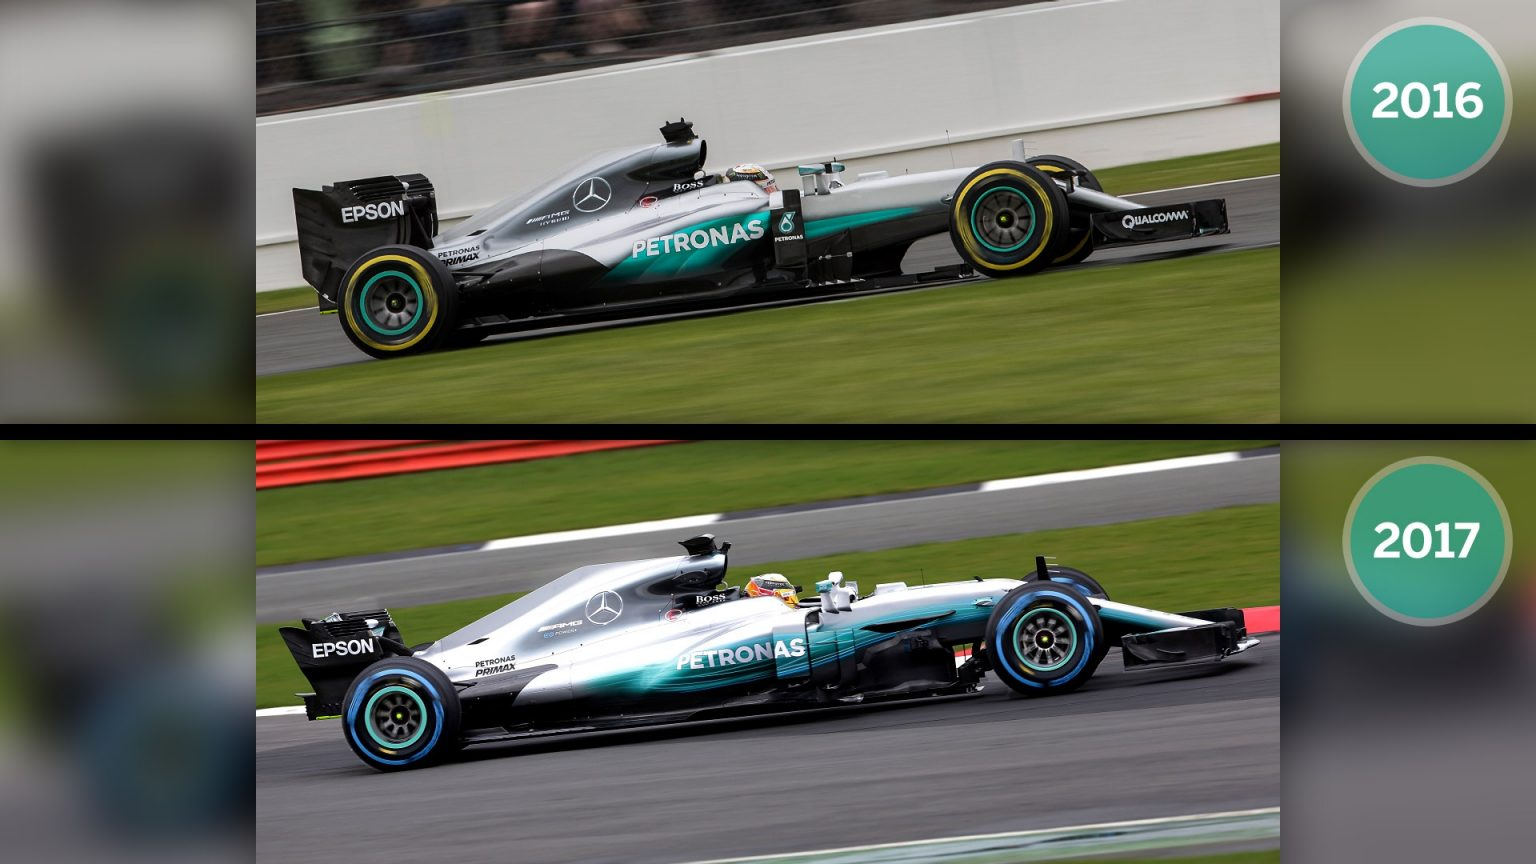 IMAGE(https://www.formula1.com/content/fom-website/en/latest/features/2017/2/gallery--how-the-2017-mercedes-compares-to-last-year-s-car/_jcr_content/featureContent/manual_gallery_0/image1.img.1536.medium.jpg/1487870232946.jpg)